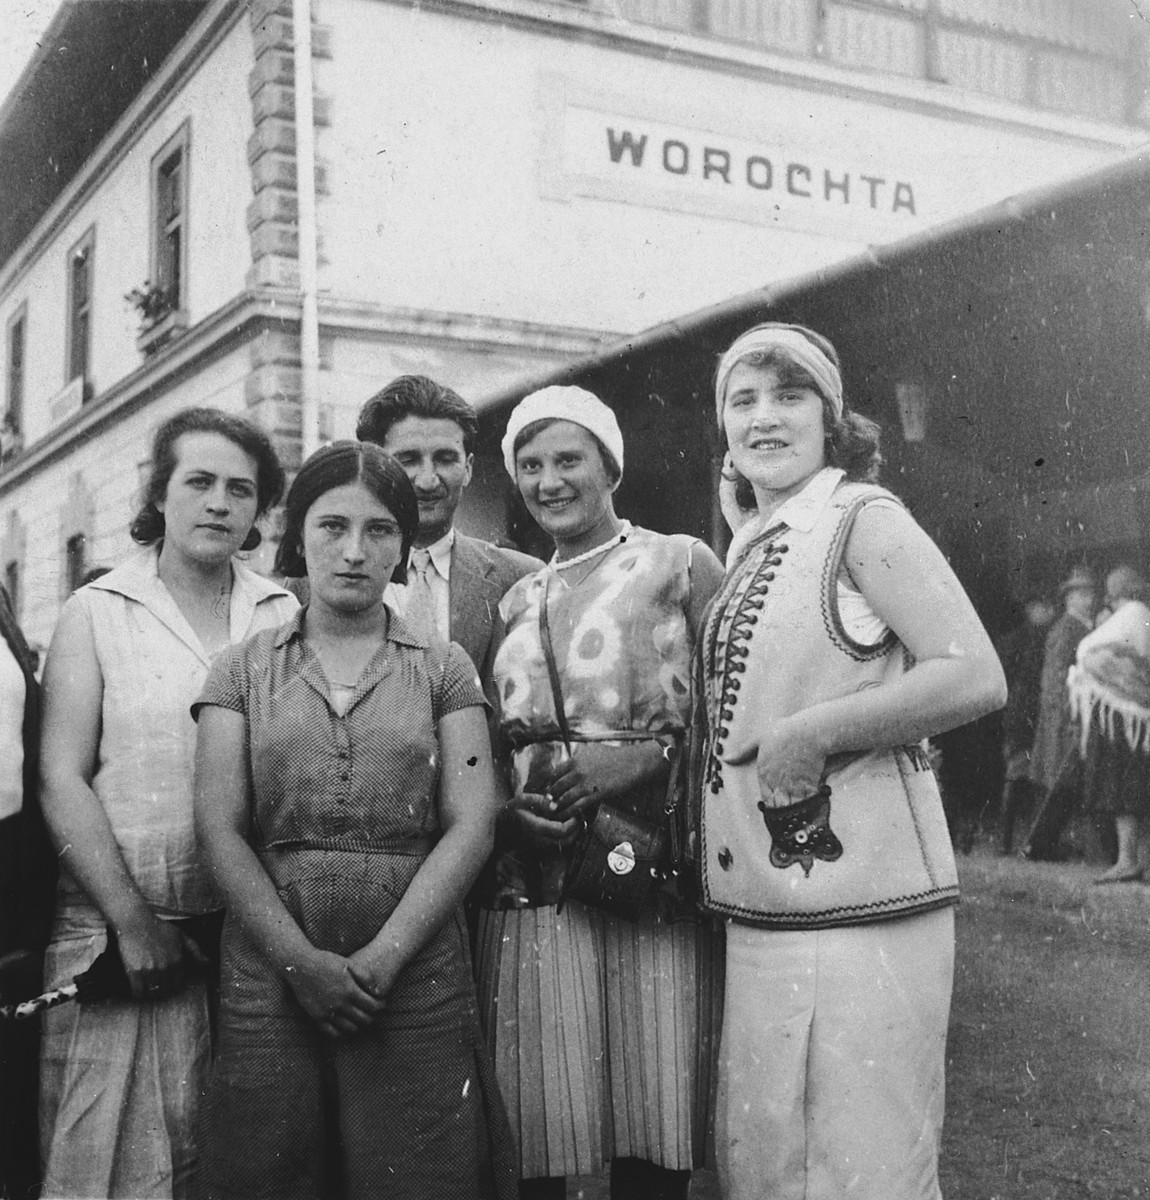 A group or friends and relatives gather outside a hotel in a mineral spa resort.  Among those pictured are Samuel and Sidonia Grunfeld, and Samuel's sister, Bertha.